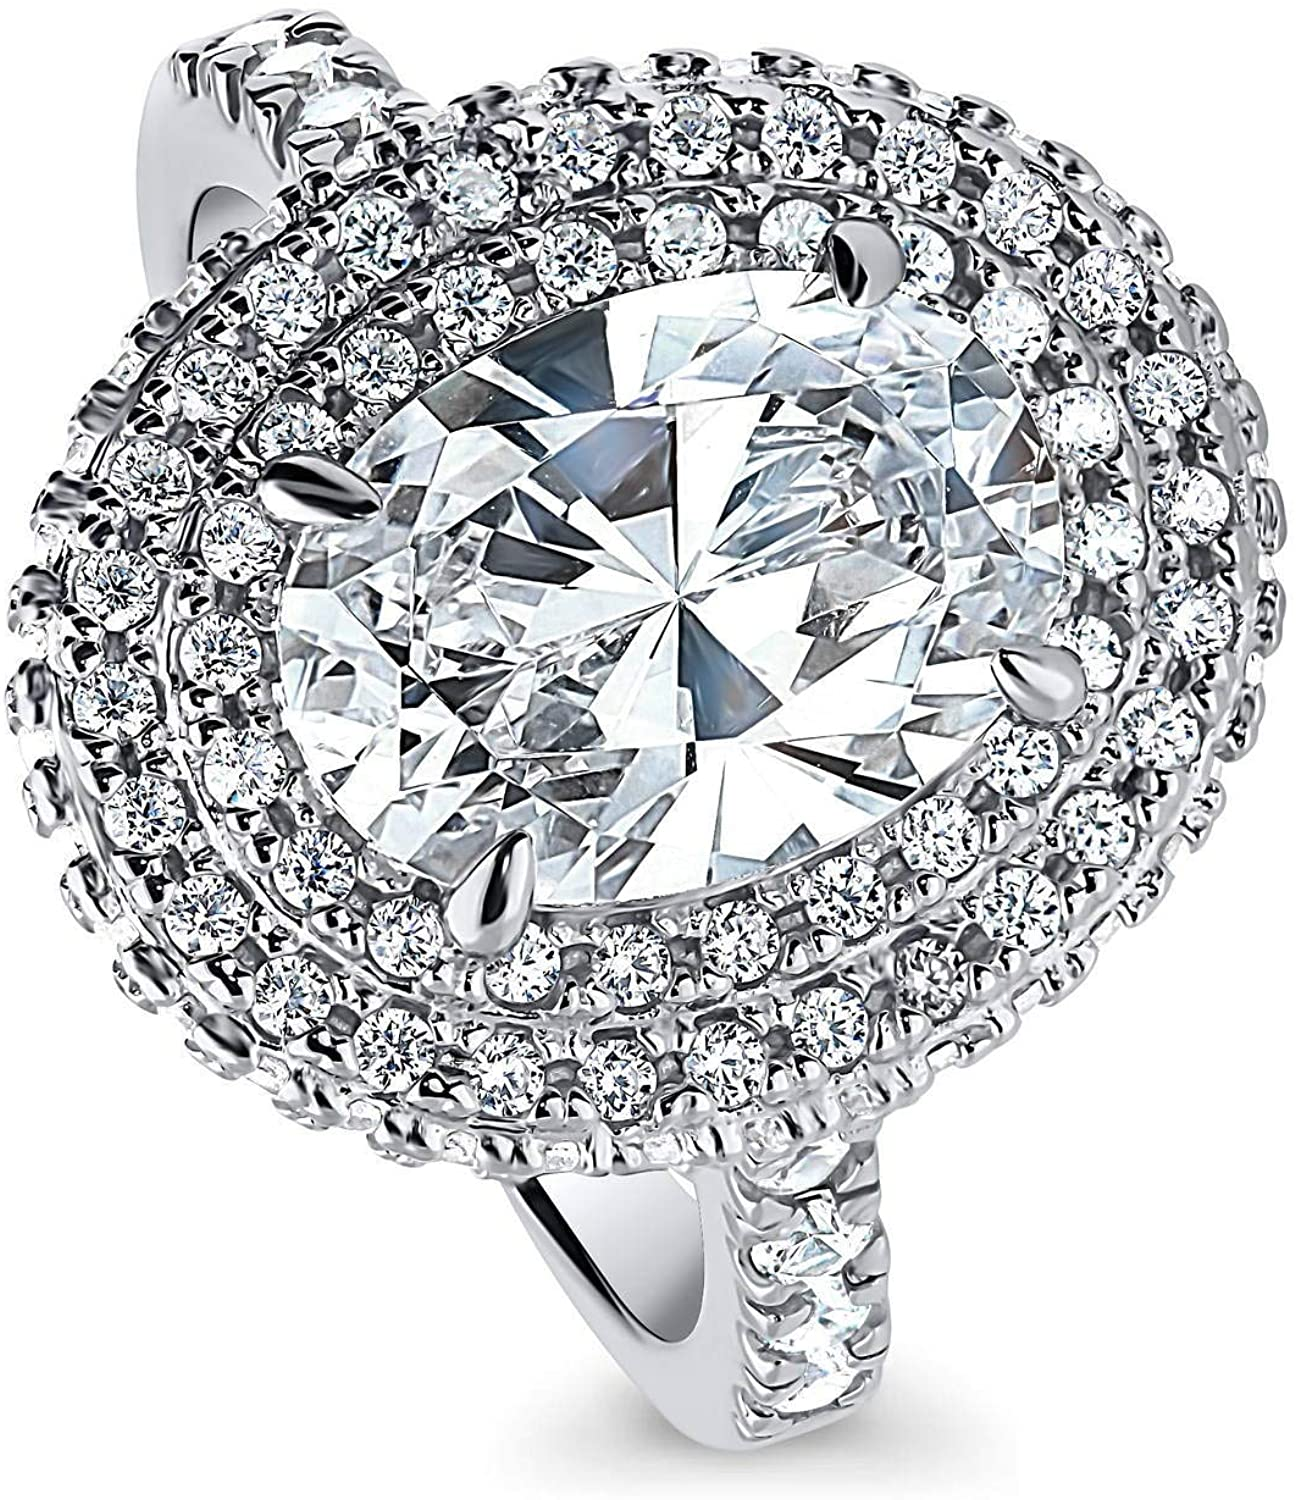 BERRICLE Rhodium Plated Sterling Silver Oval Cut Cubic Zirconia CZ Statement Halo Engagement Ring 4.15 CTW